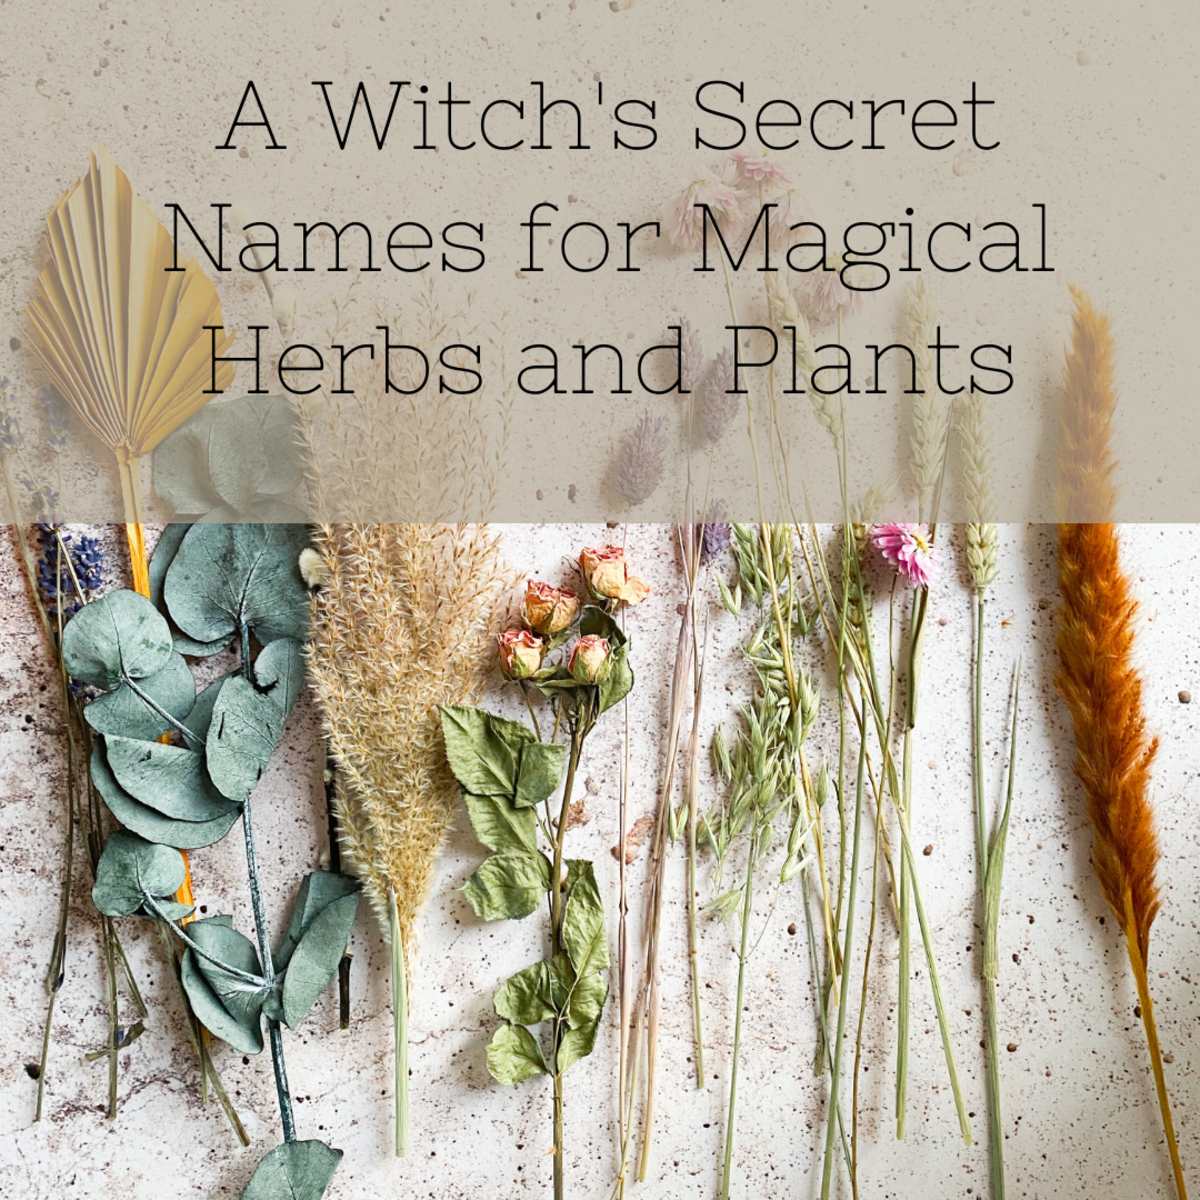 Many who practice plant or herb magic have secret names for the plants they use.